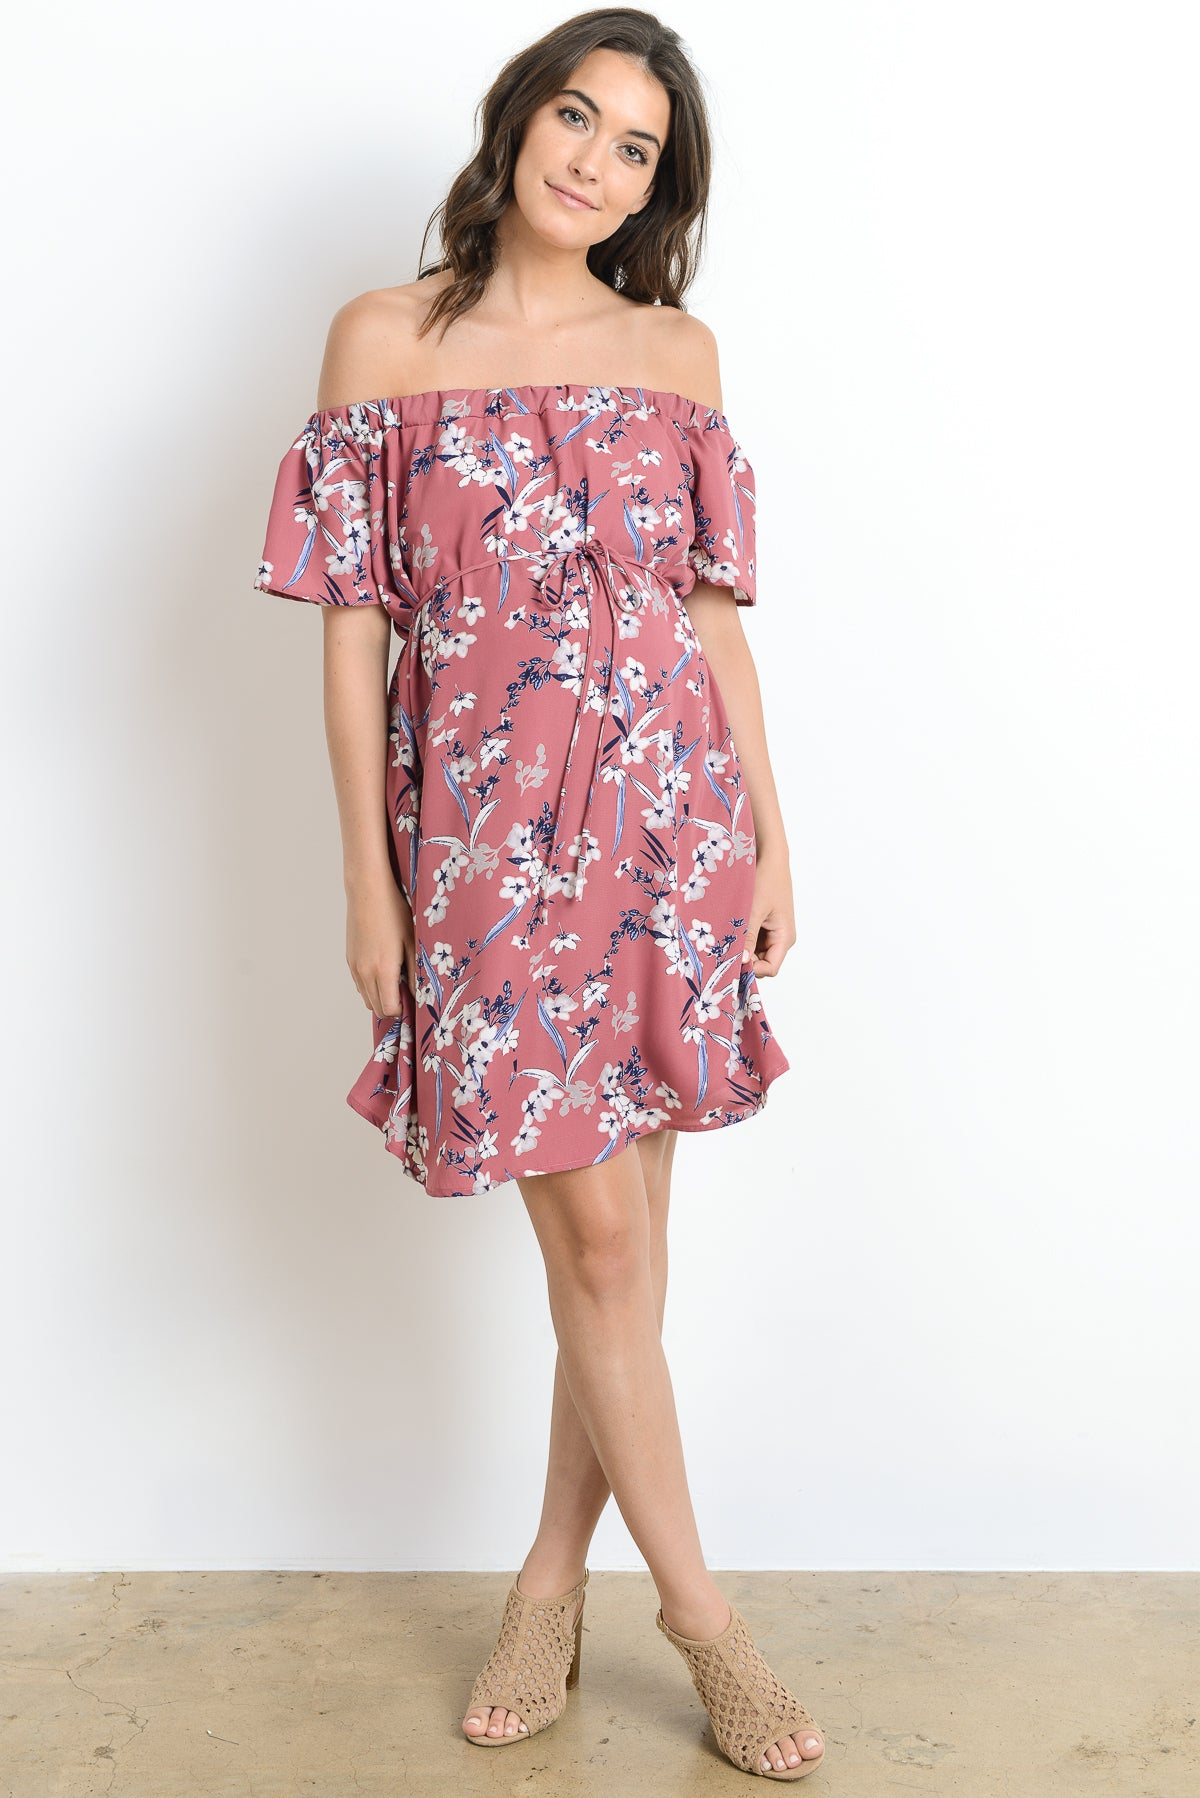 Floral maternity off shoulder dress hello miz floral maternity off shoulder dress ombrellifo Image collections